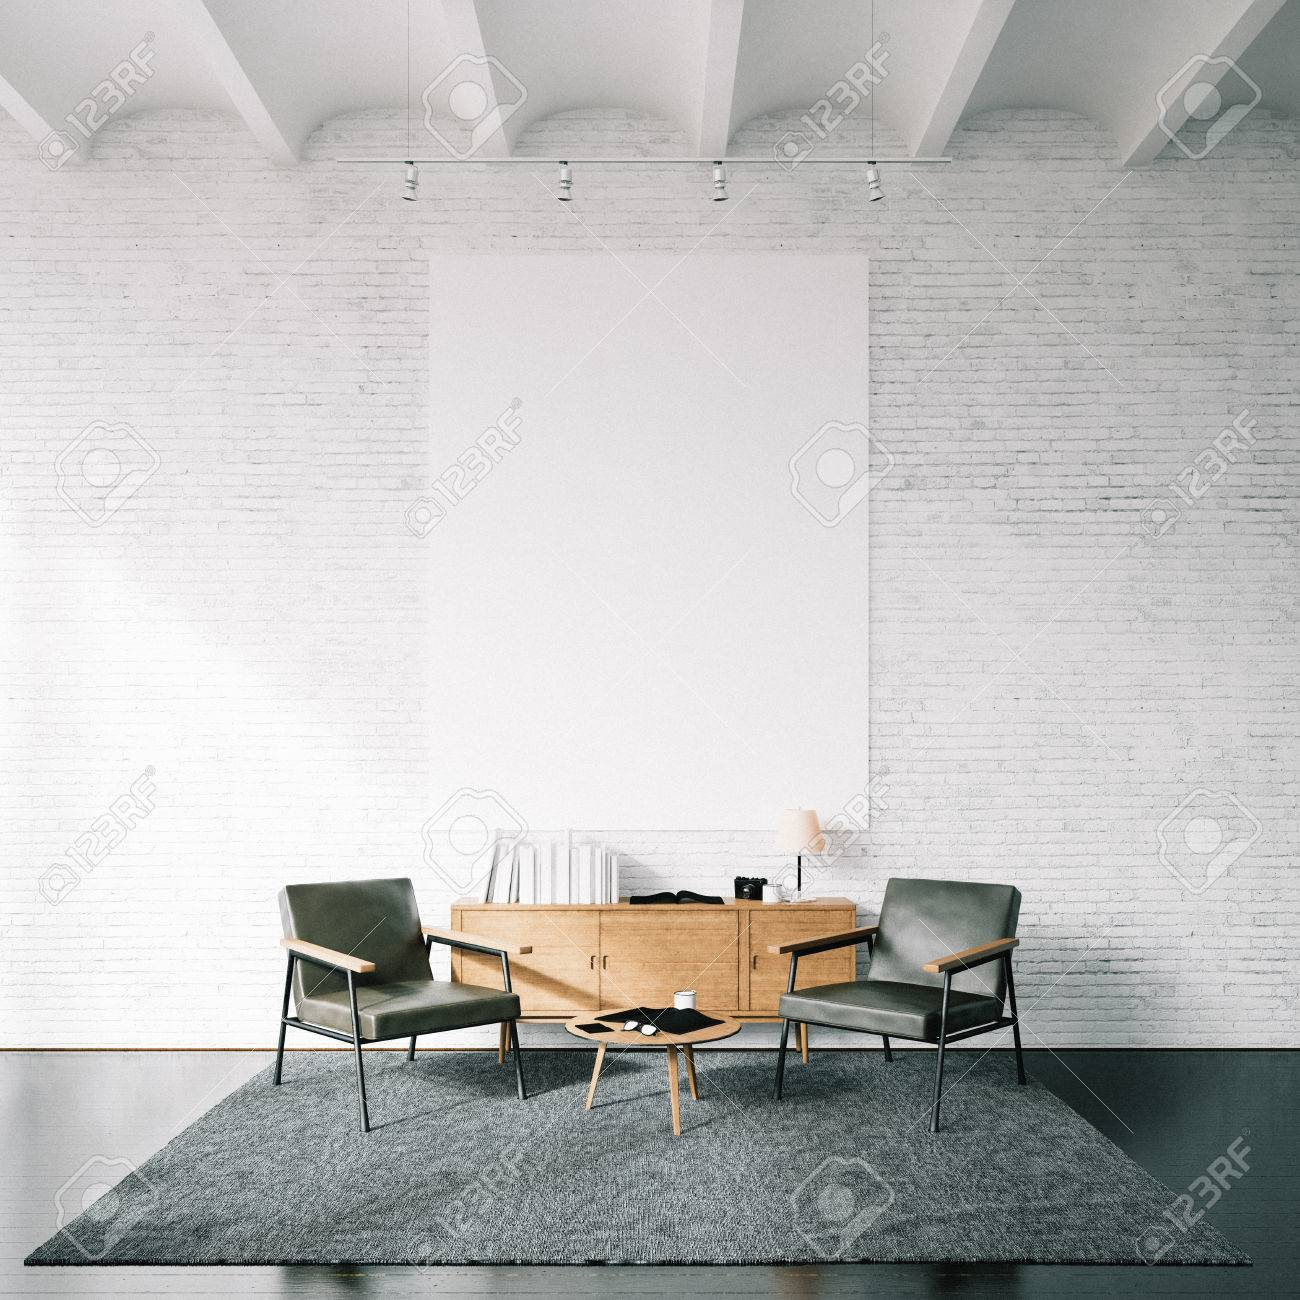 the bricks furniture. Blank White Canvas And Modern Furniture On The Bricks Wall Background. Stock S